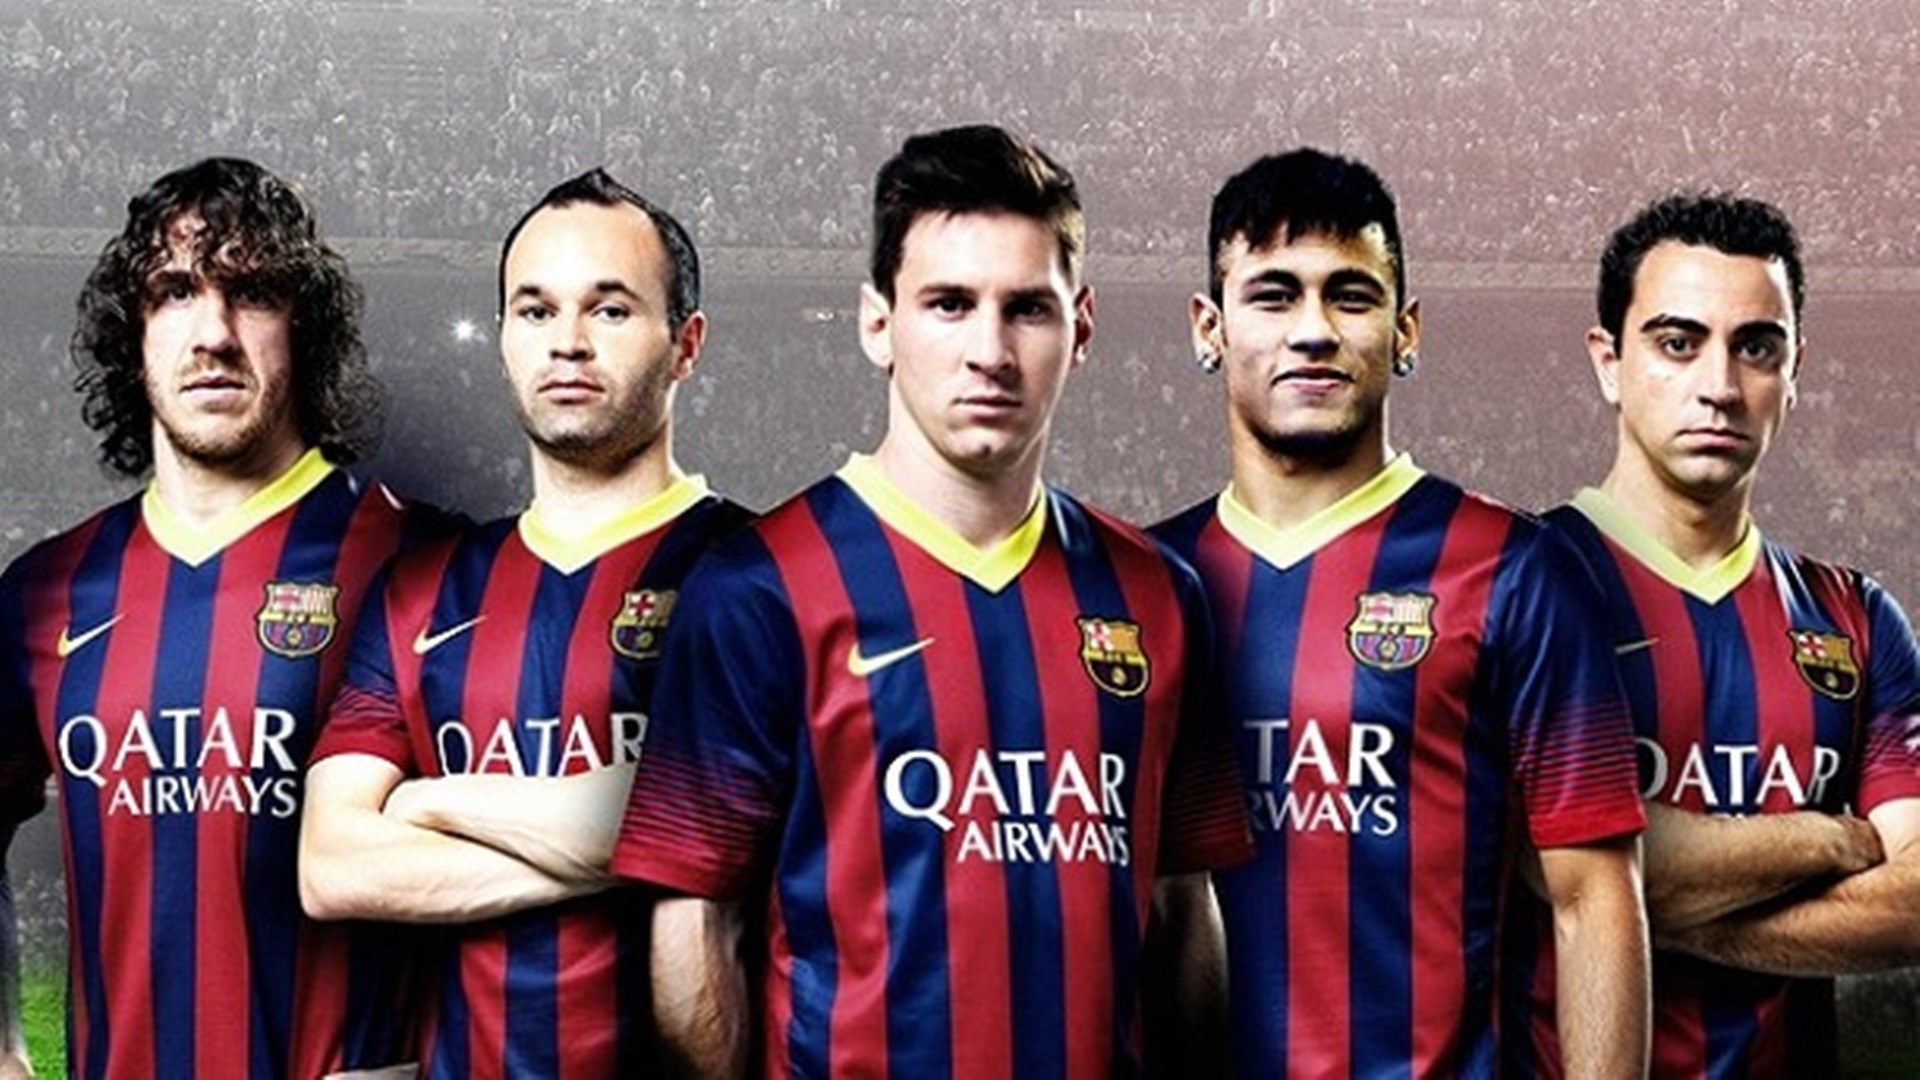 fc-barcelona-1920x1080-hd-wallpaper-wpc9204867